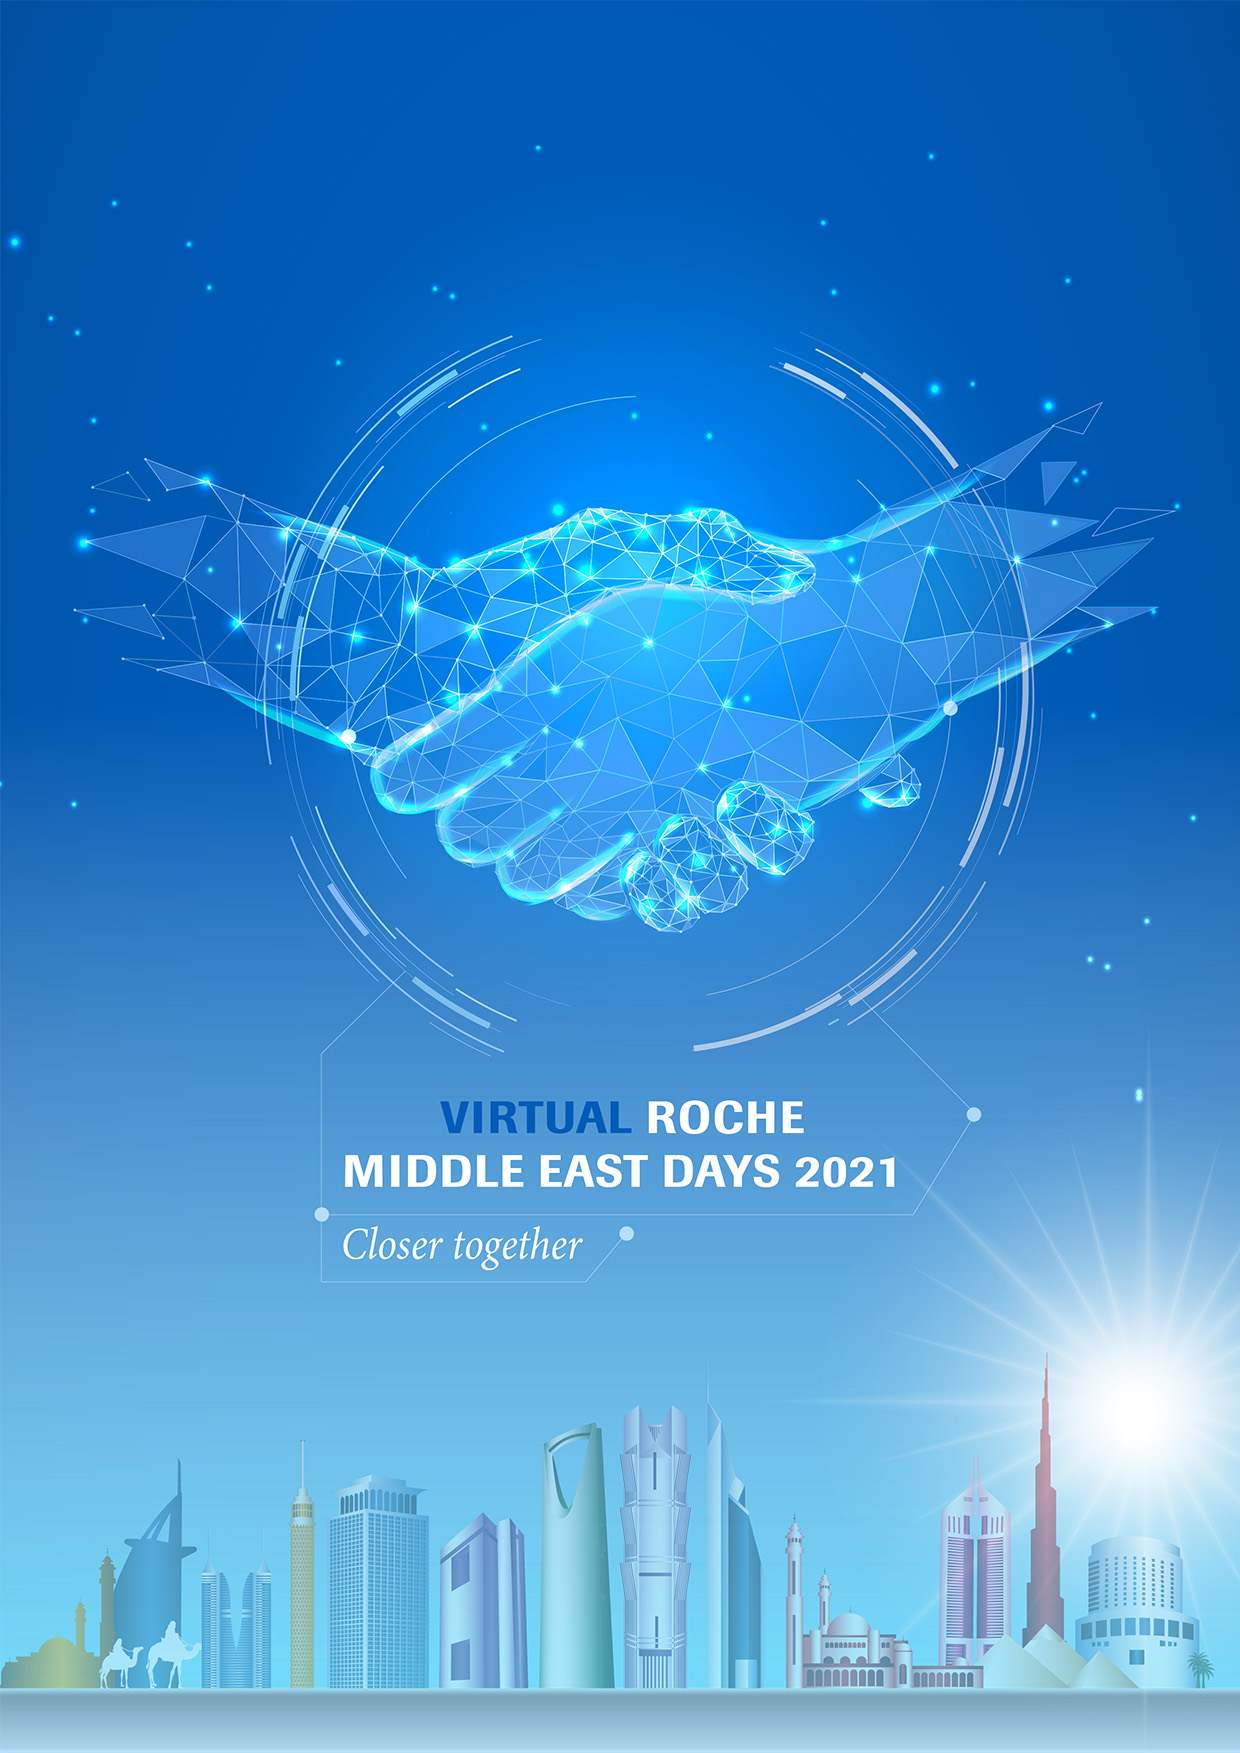 Virtual Roche Middle East Days 2021